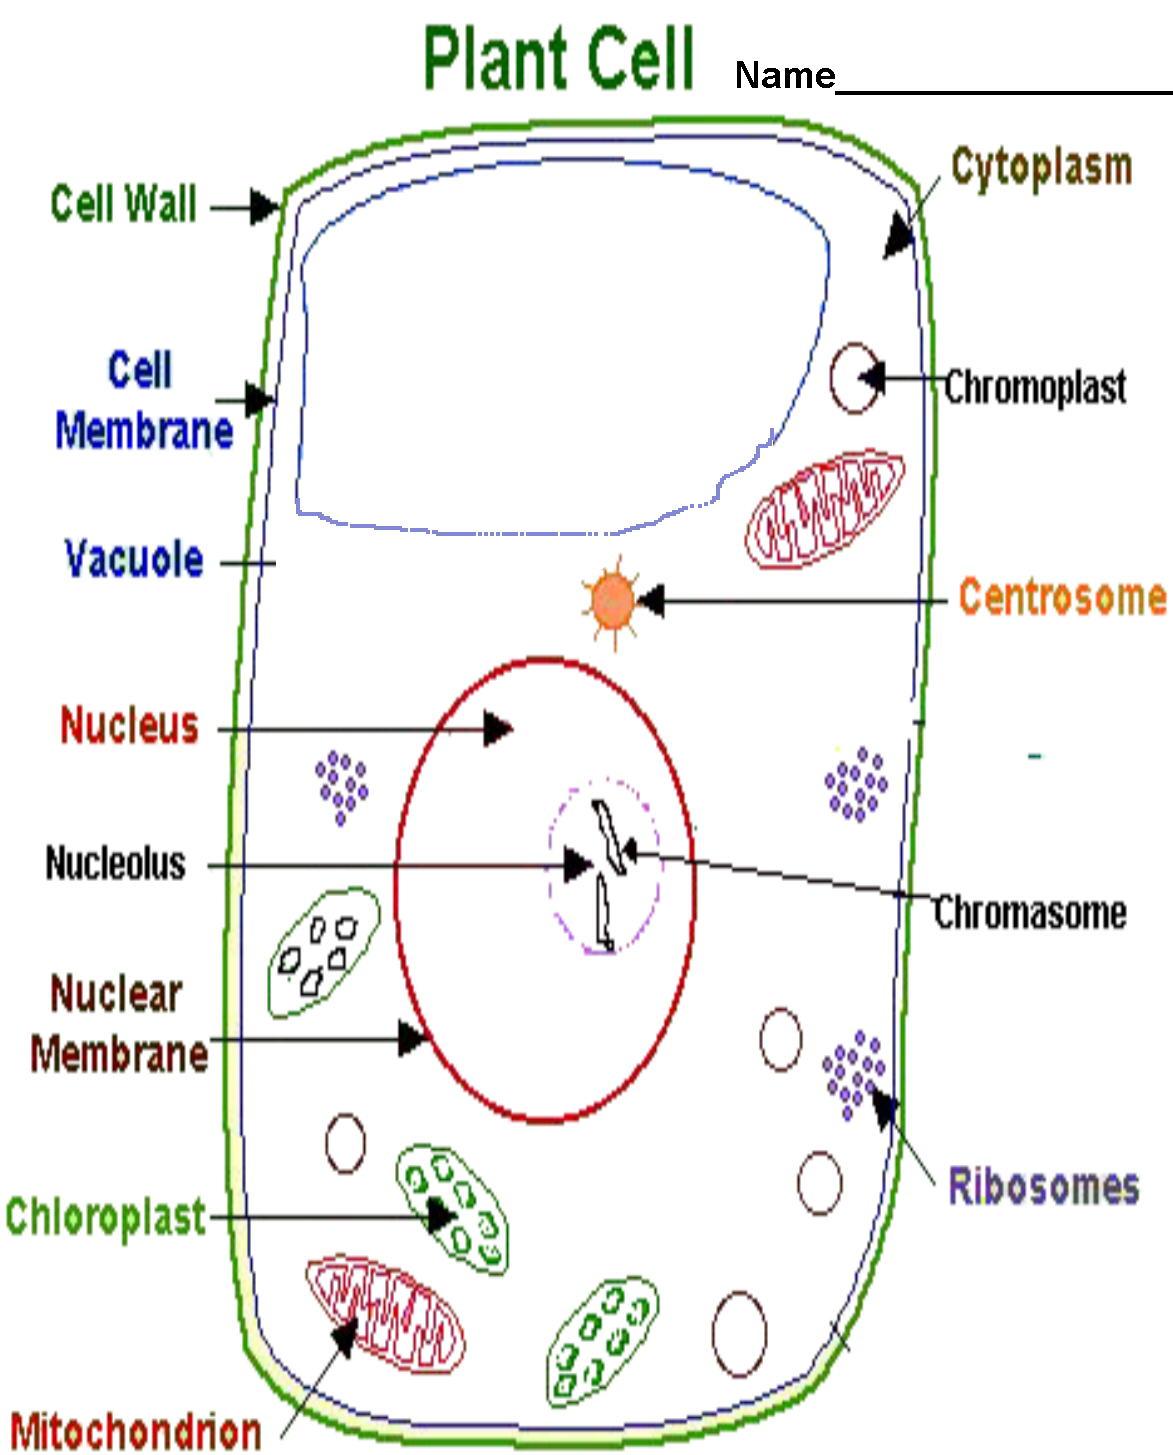 Plant Cell Drawing With Labels At Free For Simple Cells Diagram Basic 1173x1455 Collection Of A High